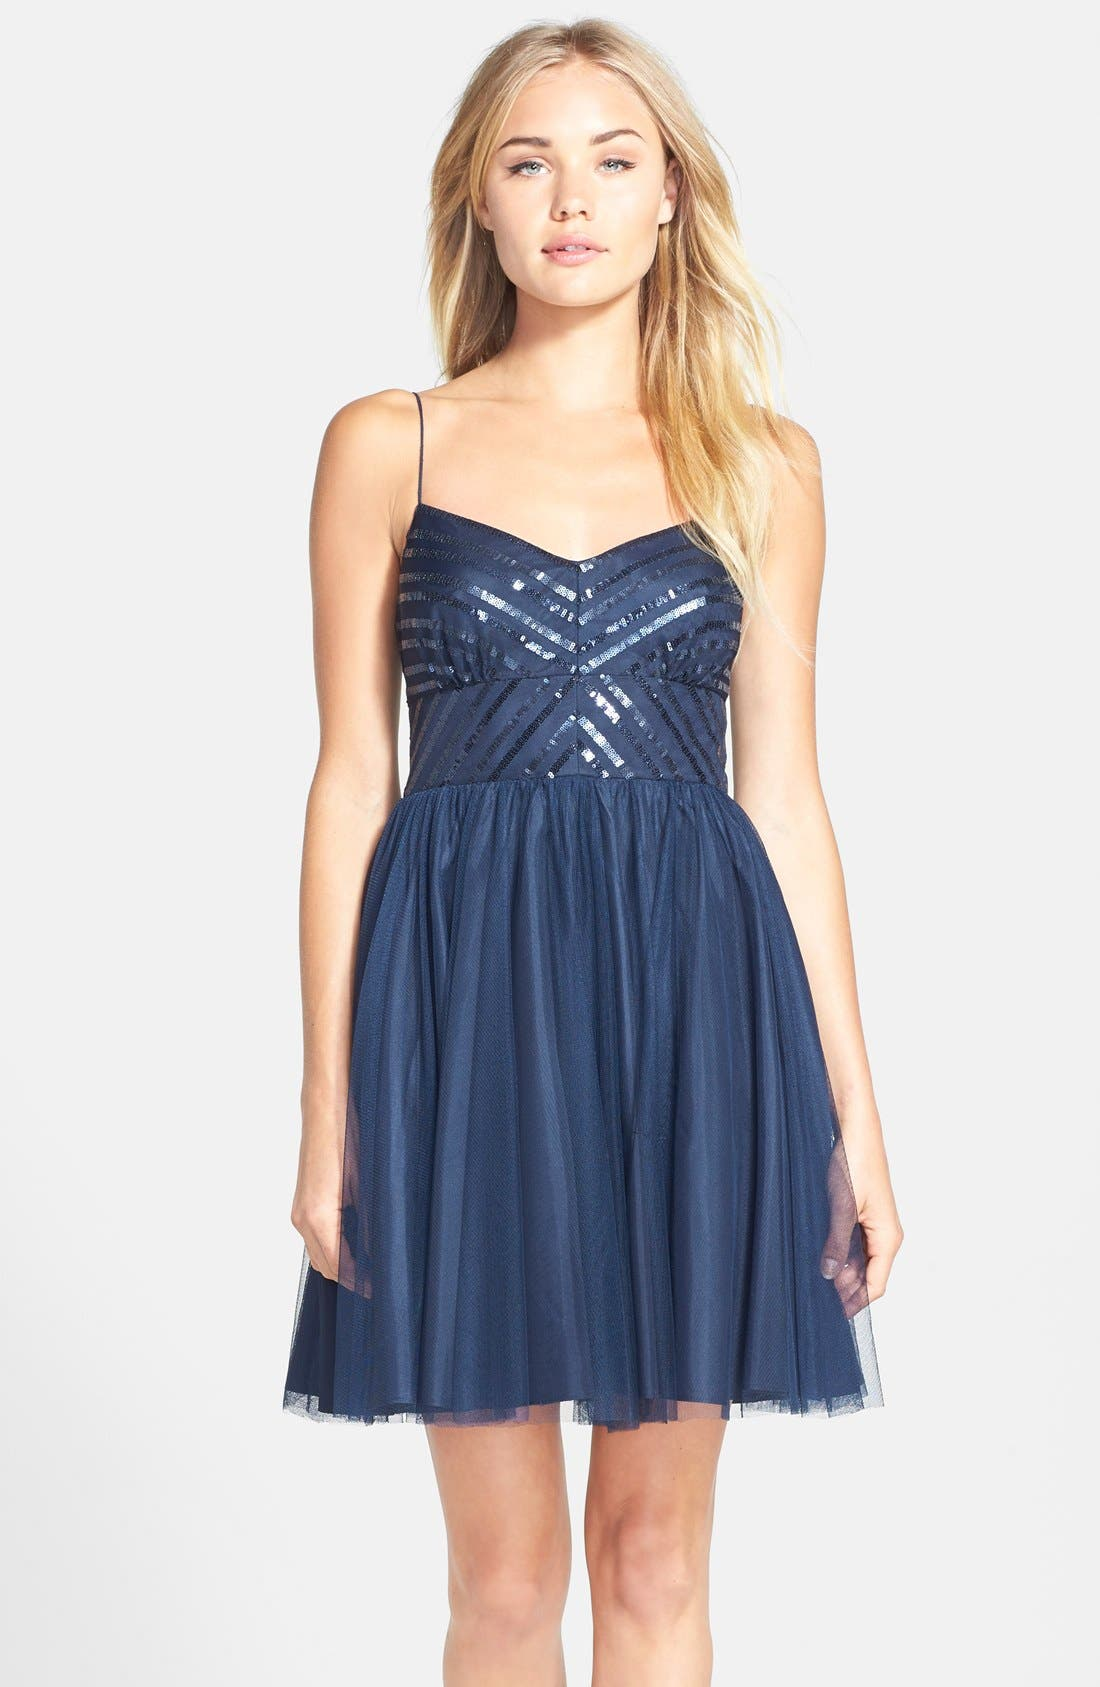 Alternate Image 1 Selected - Aidan by Aidan Mattox Spaghetti Strap Sequin & Tulle Dress (Online Only)